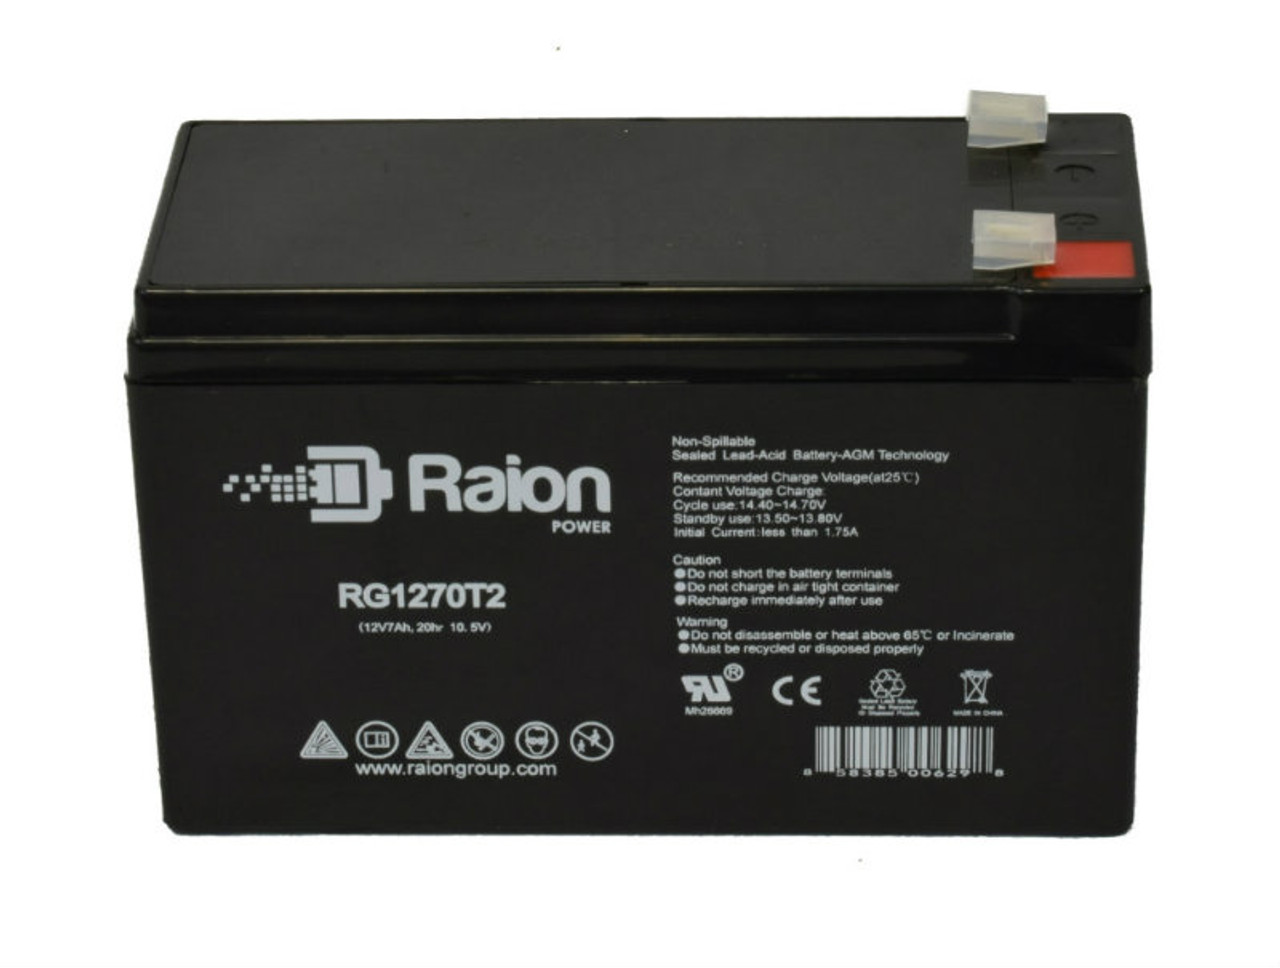 Raion Power 12V 7Ah SLA Battery With T1 Terminals For Consent Battery GS127-2